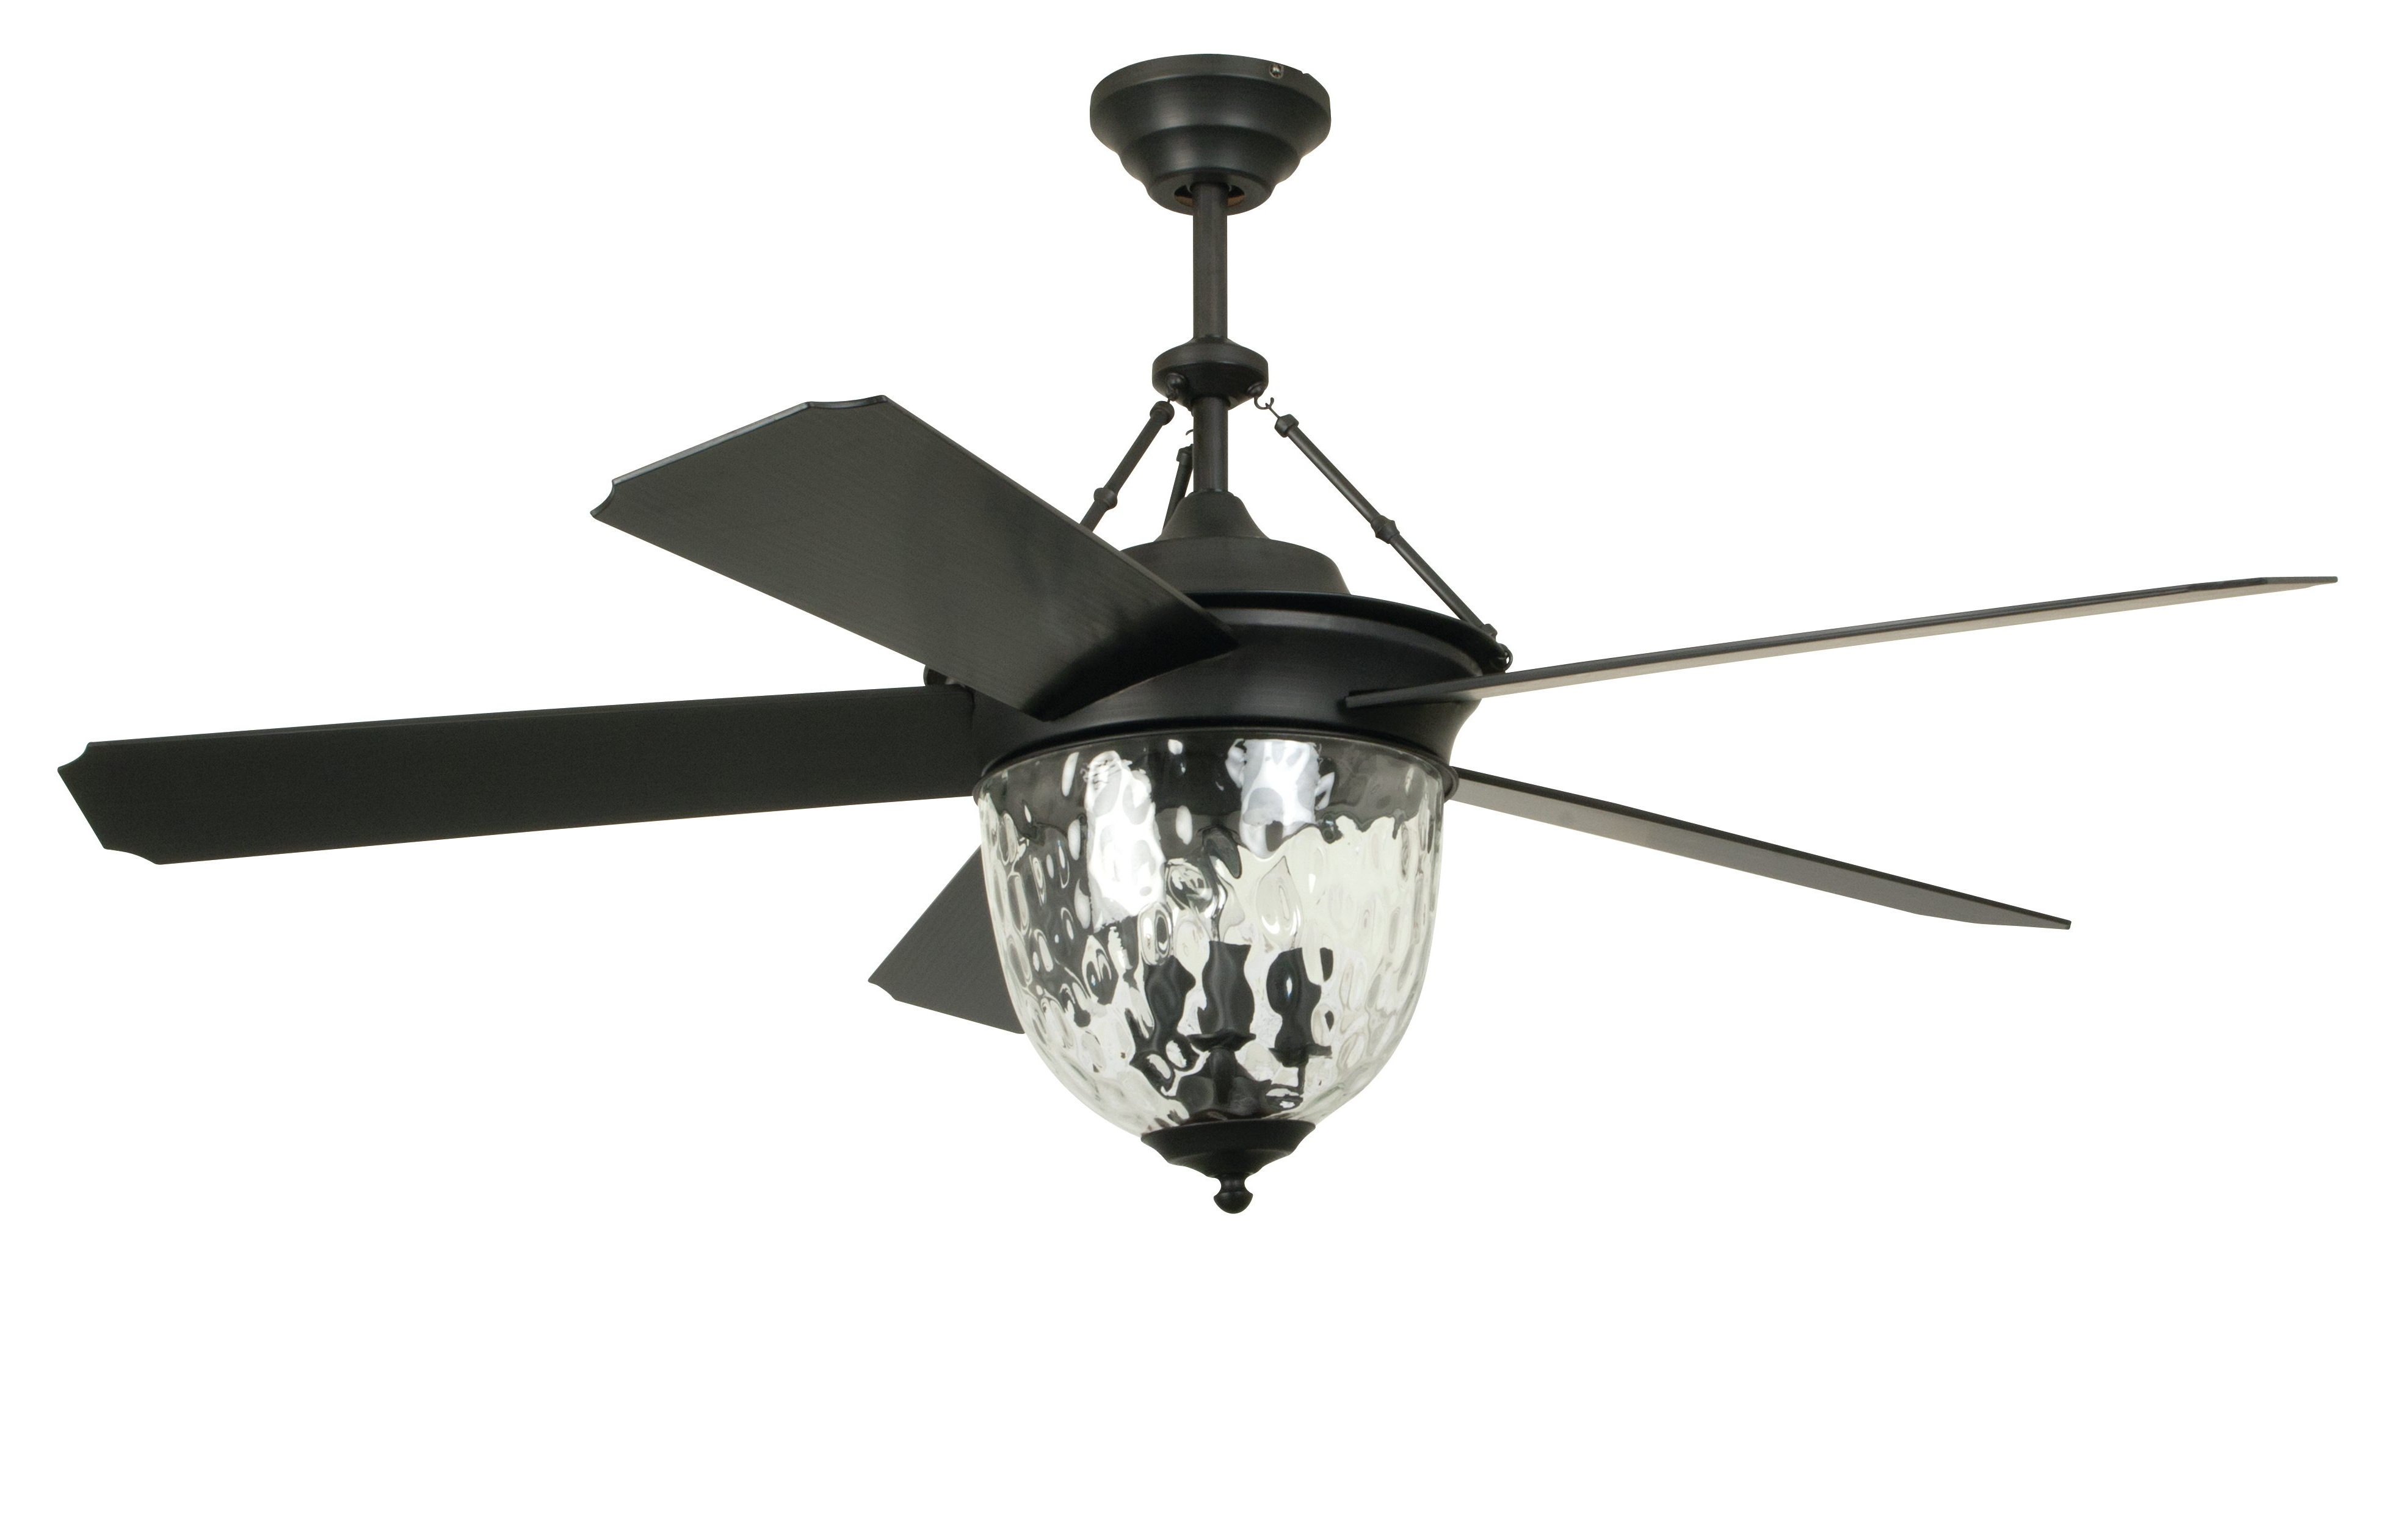 "52"" Fairmead 5 Blade Ceiling Fan With Wall Remote Throughout Preferred Wilburton 5 Blade Ceiling Fans With Remote (View 3 of 20)"